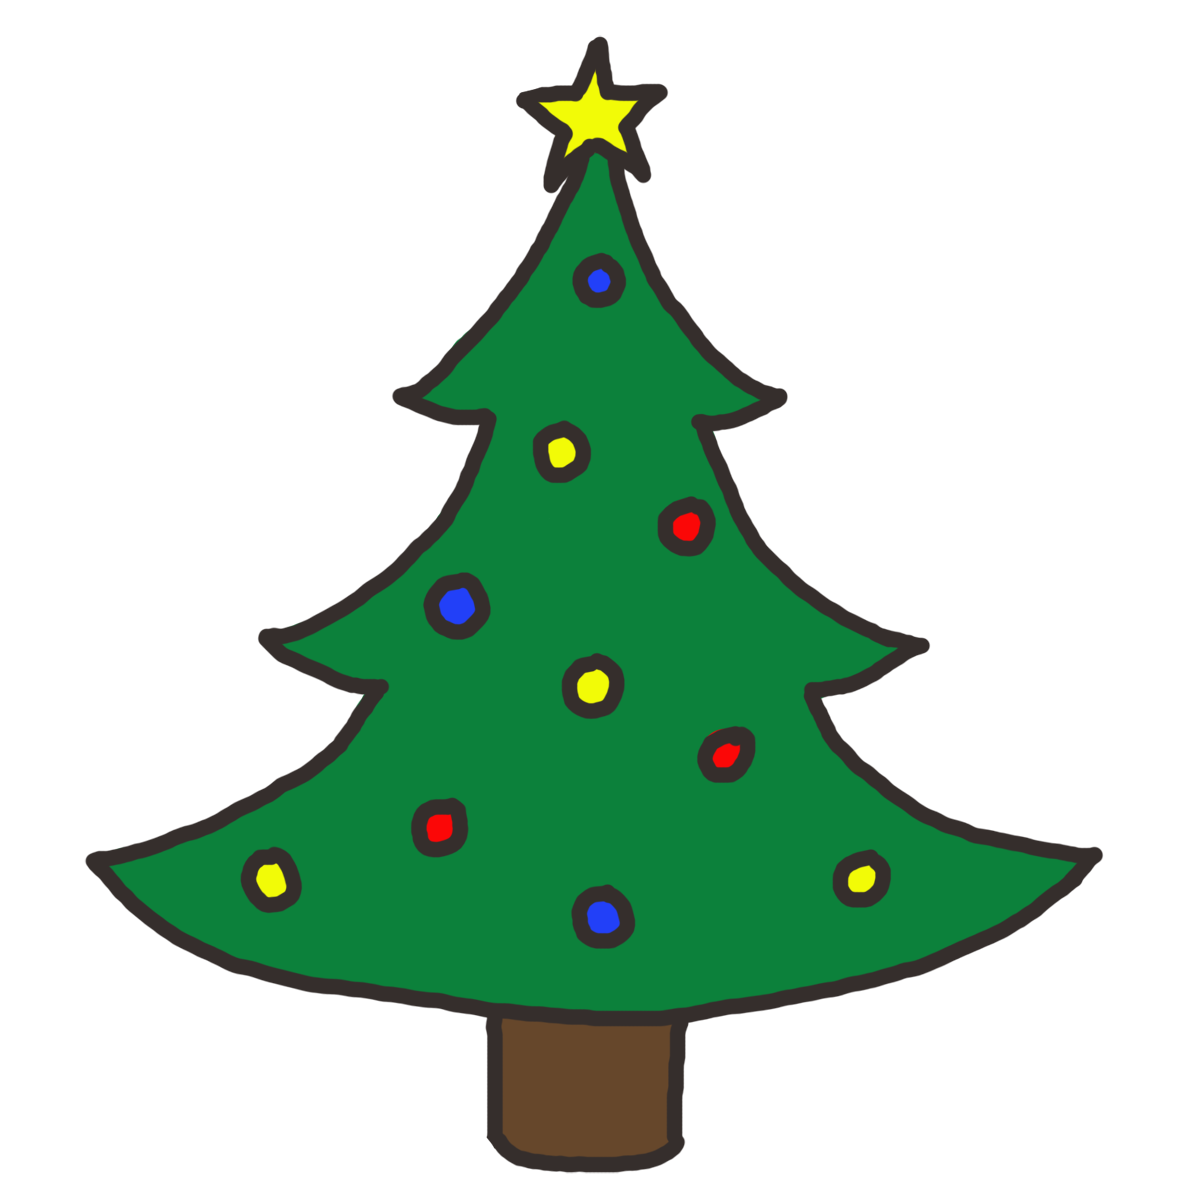 December clipart christmas. Cliparts for free